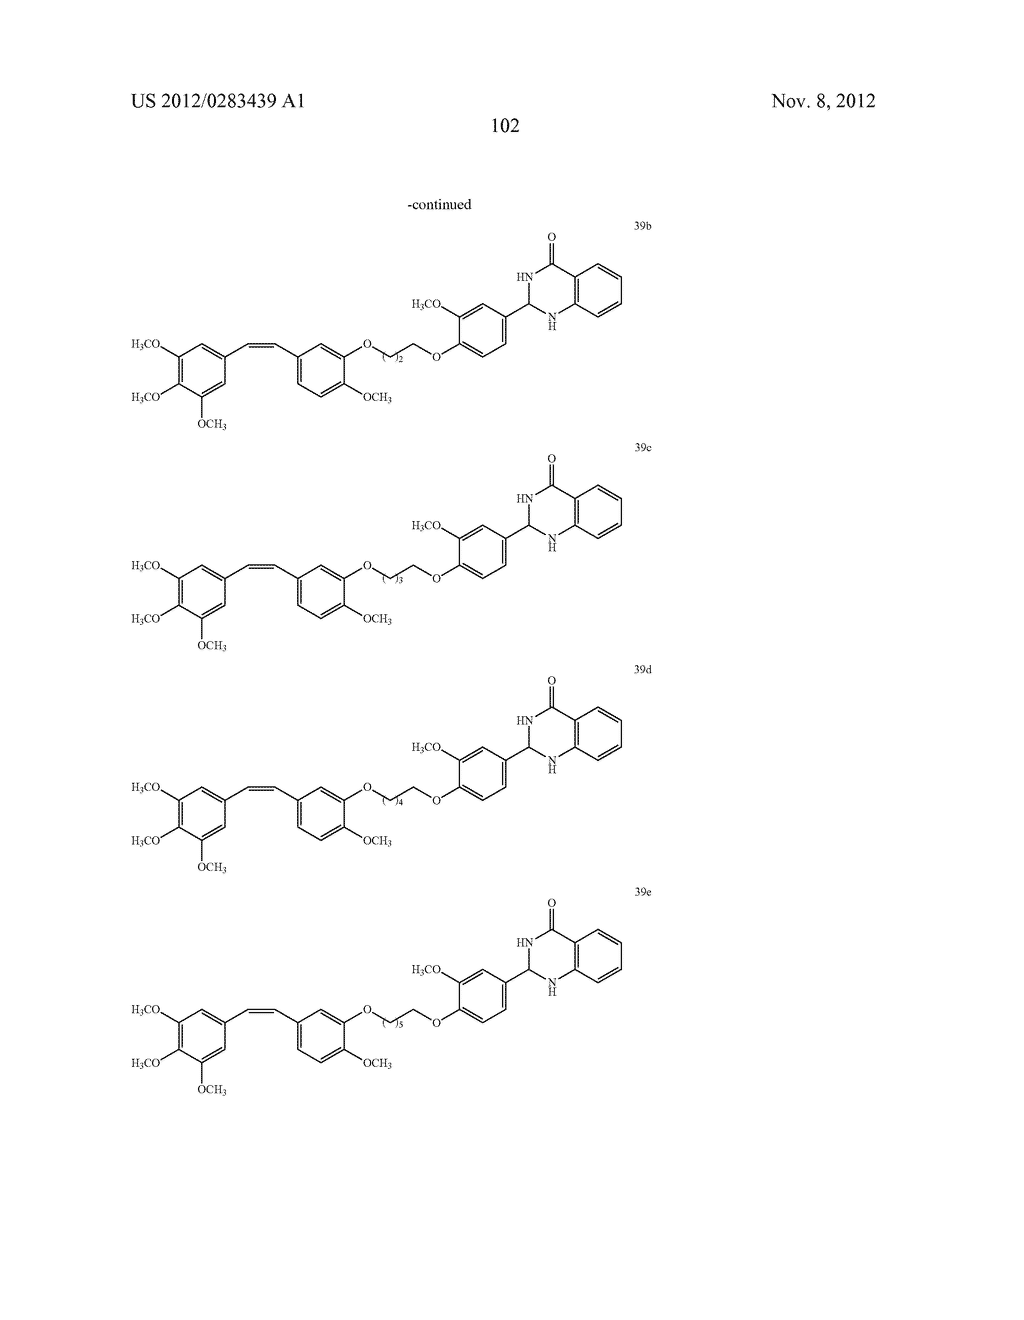 ISOXAZOLE/ISOXAZOLINE/COMBRETASTATIN LINKED DIHYDROQUINAZOLINONE HYBRIDS     AS POTENTIAL ANTICANCER AGENTS AND PROCESS FOR THE PREPARATION THEREOF - diagram, schematic, and image 104